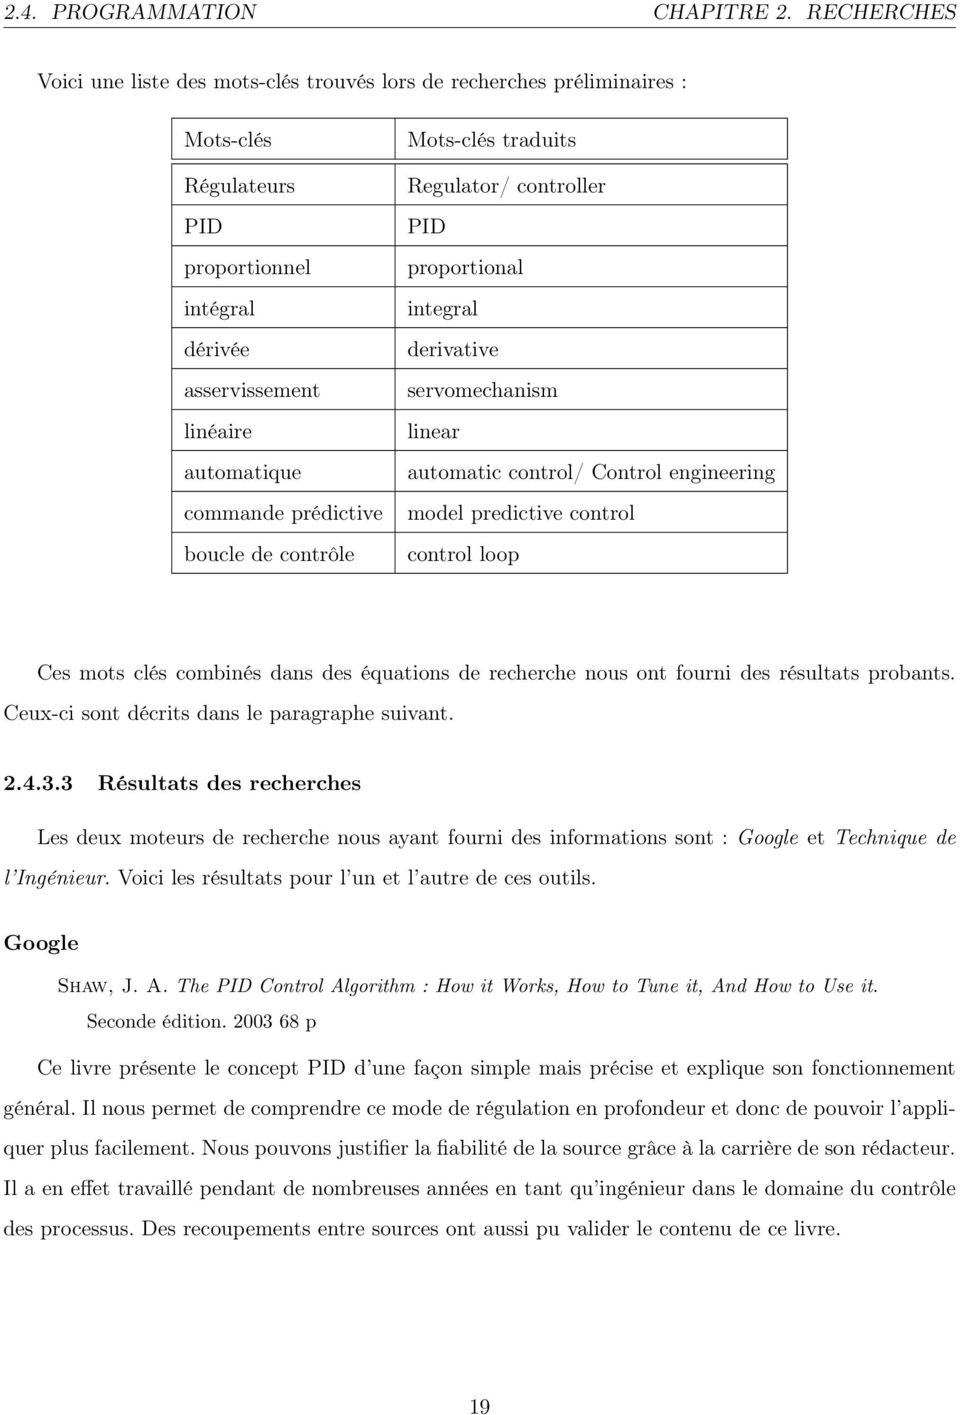 boucle de contrôle Mots-clés traduits Regulator/ controller PID proportional integral derivative servomechanism linear automatic control/ Control engineering model predictive control control loop Ces